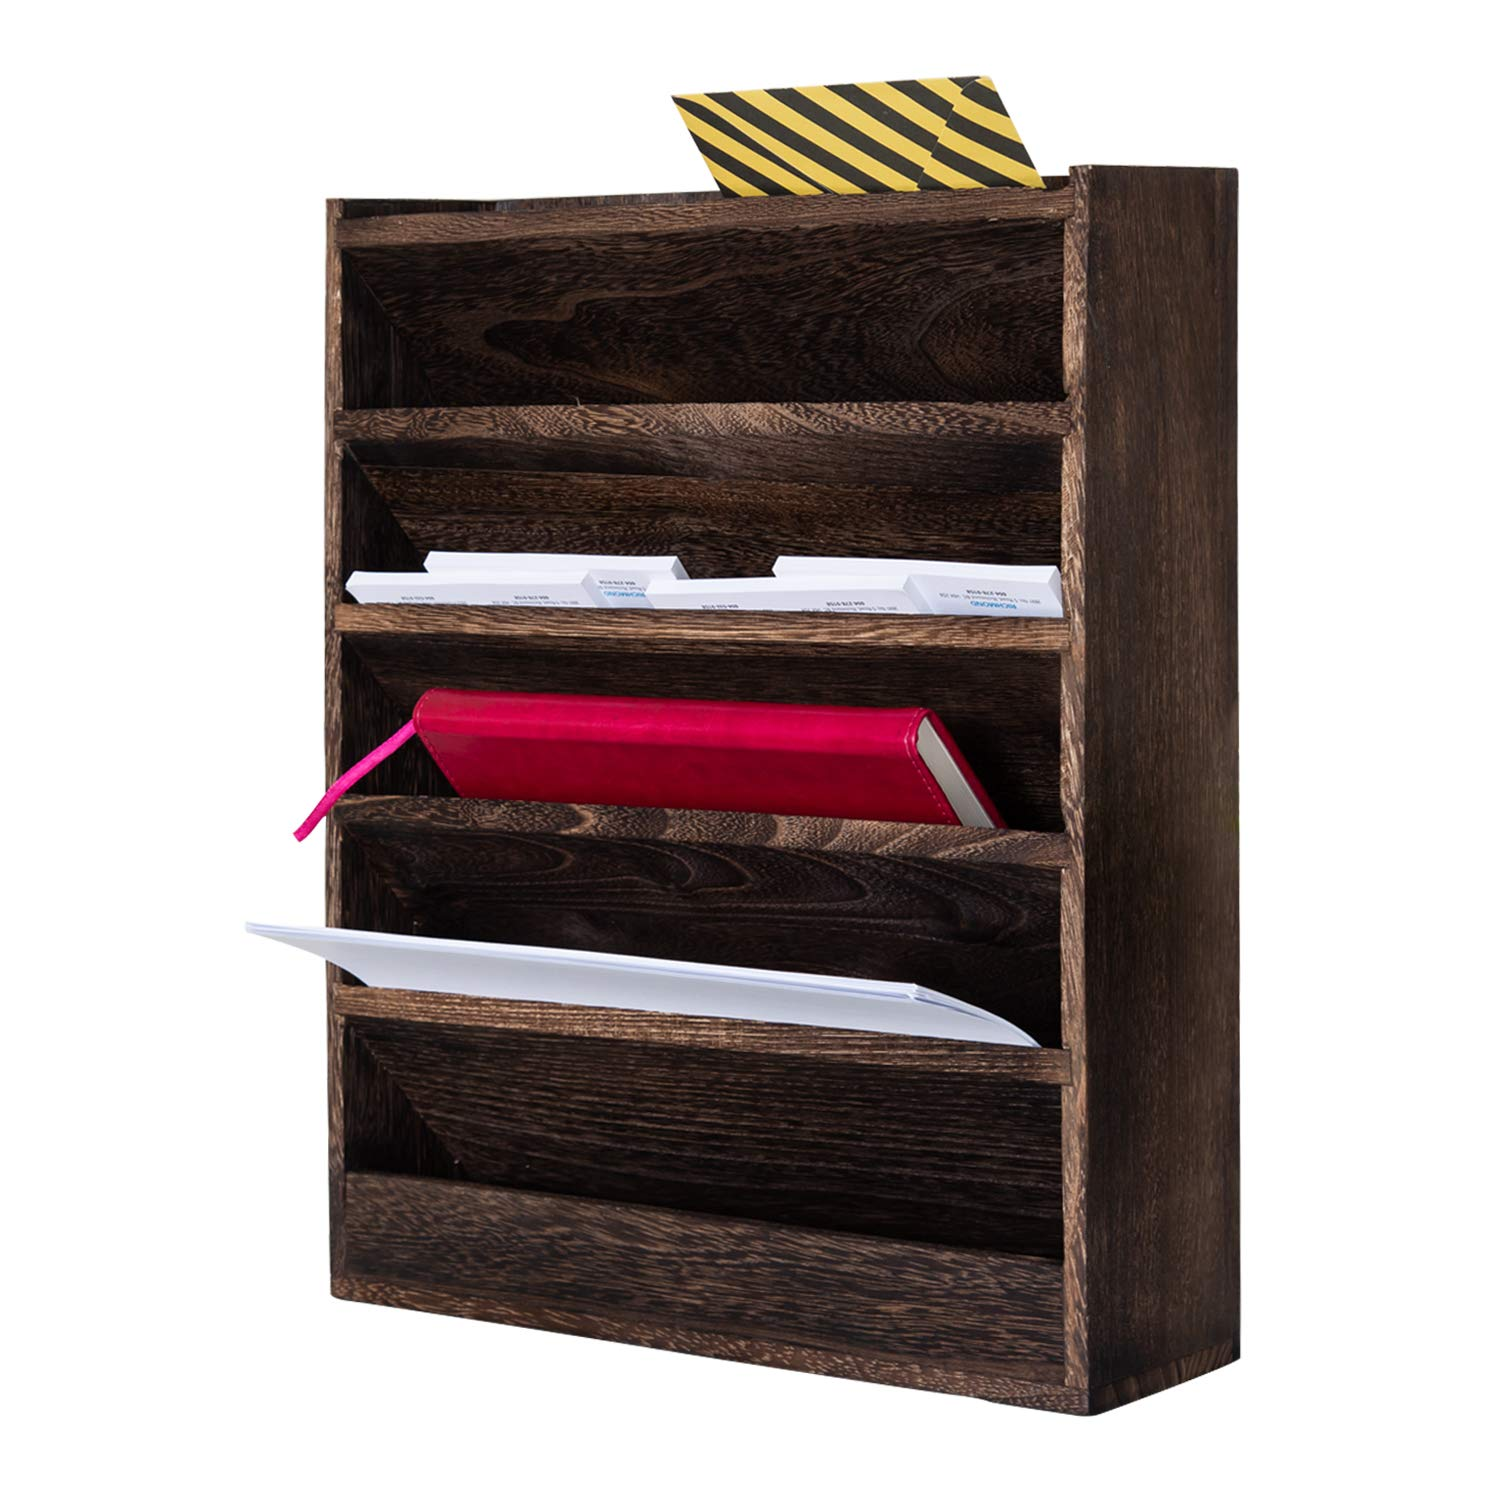 Comfify Rustic Wood Document Filing Organizer for Home or Office – Wall Mounted Magazine Holder with 5 Slots – Mail Organizer for Wall – Real Torched Wood Mail Rack Tray – Torched Brown